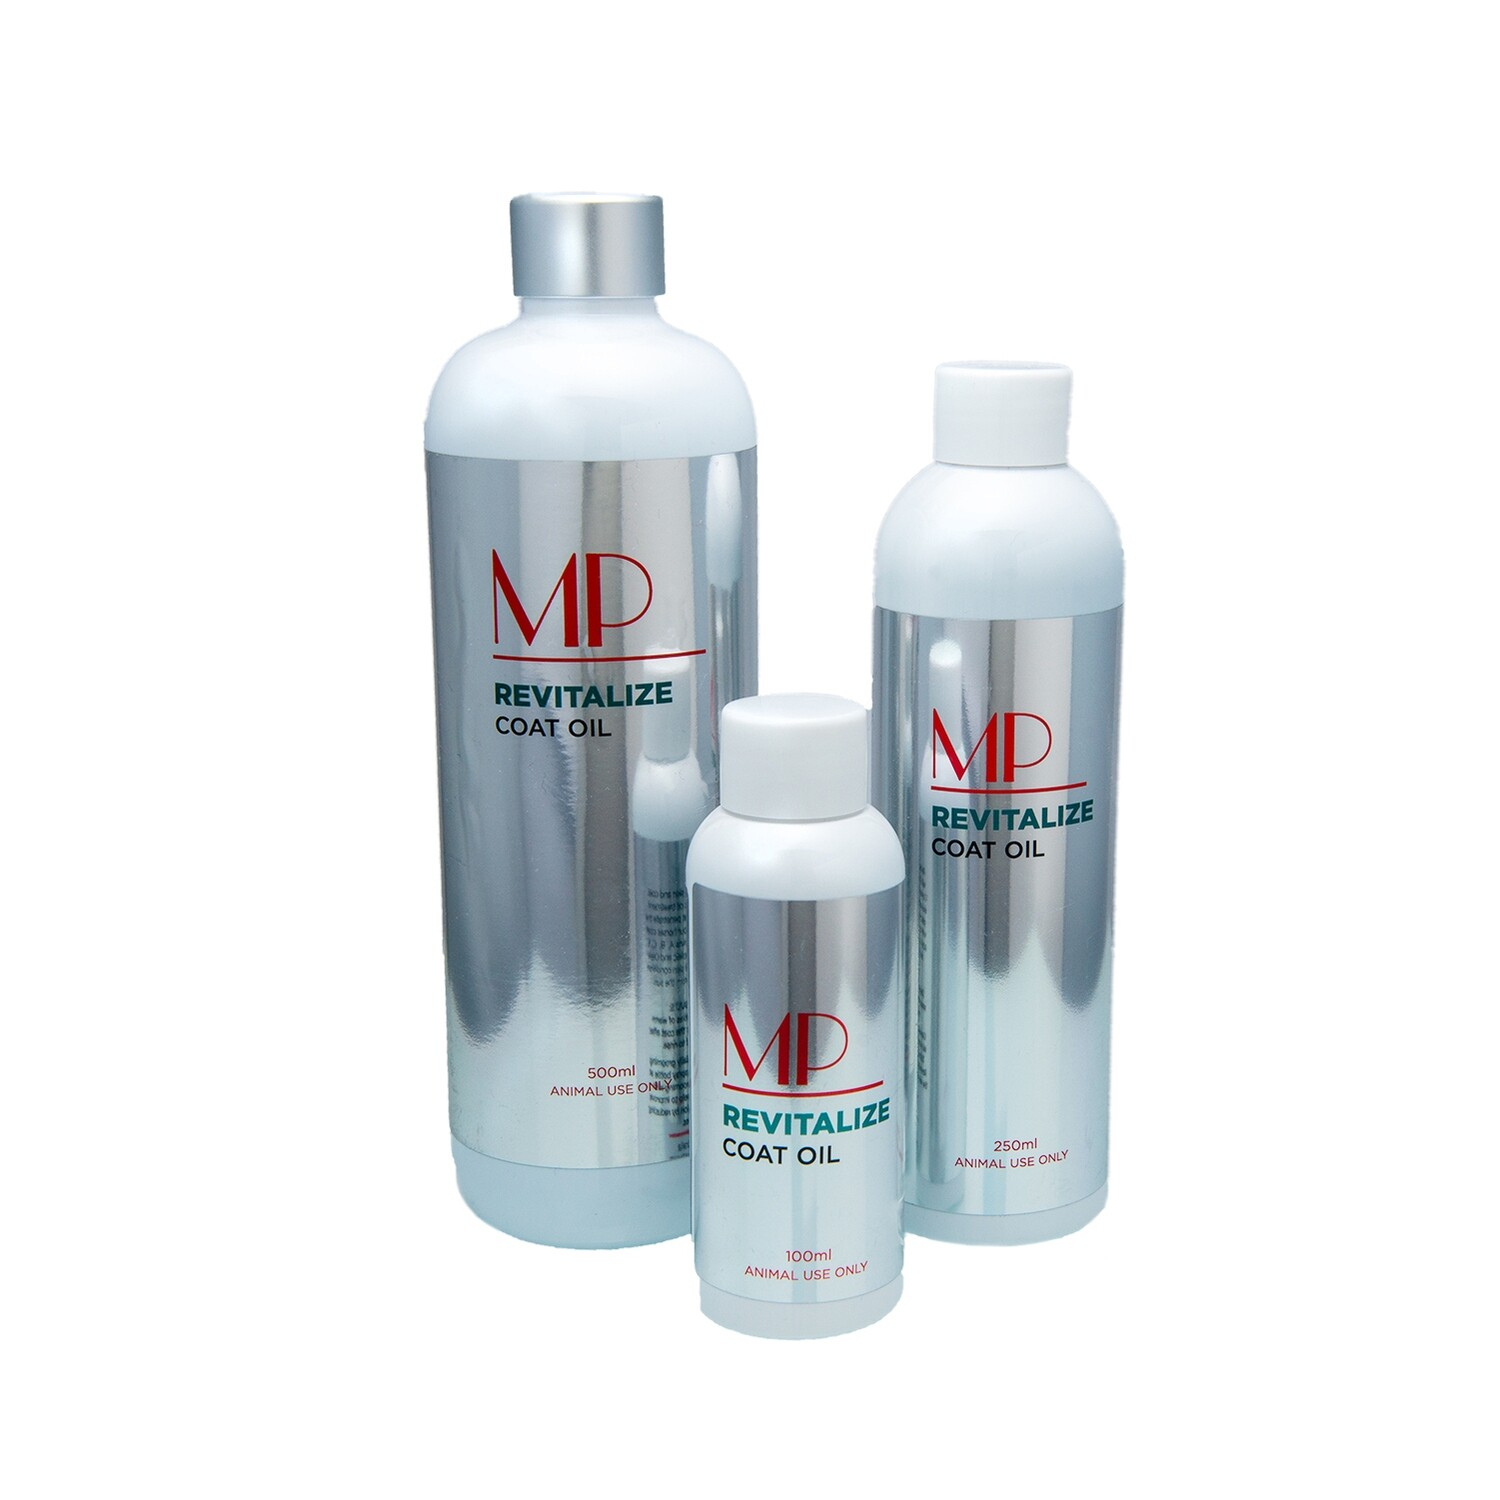 PRE ORDER - Delivery Will Be W/C 19 July MP Revitalize Coat Oil - The Hot Oil